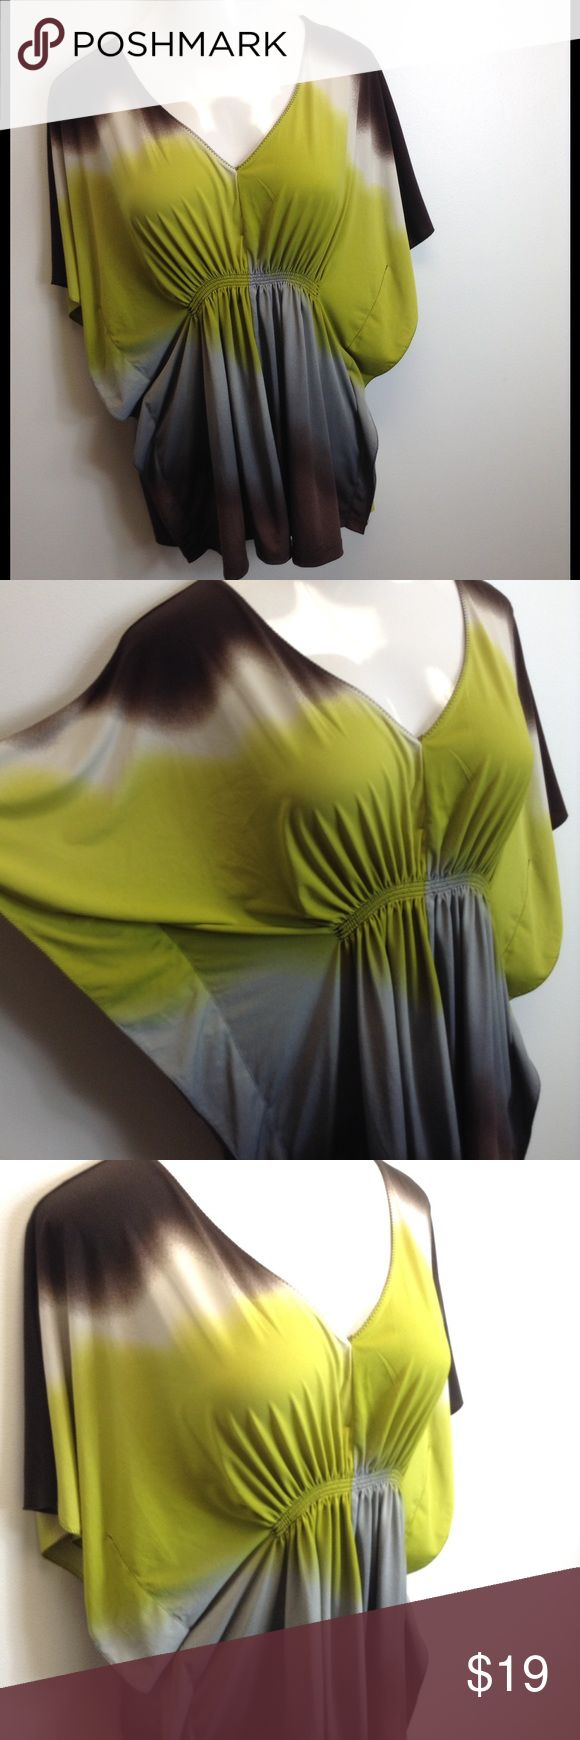 ➕ XL Worthington Dolman Dressy Top This gorgeous top has a silky feel and can be dressed up or down.  Pair with chunky jewelry, leggings and boots for a night on the town!  Brown, gray and olive make a striking combination.  95% polyester, 5% spandex.  Plenty of stretch hugs curves while camouflaging the tummy. Worthington Tops Tunics